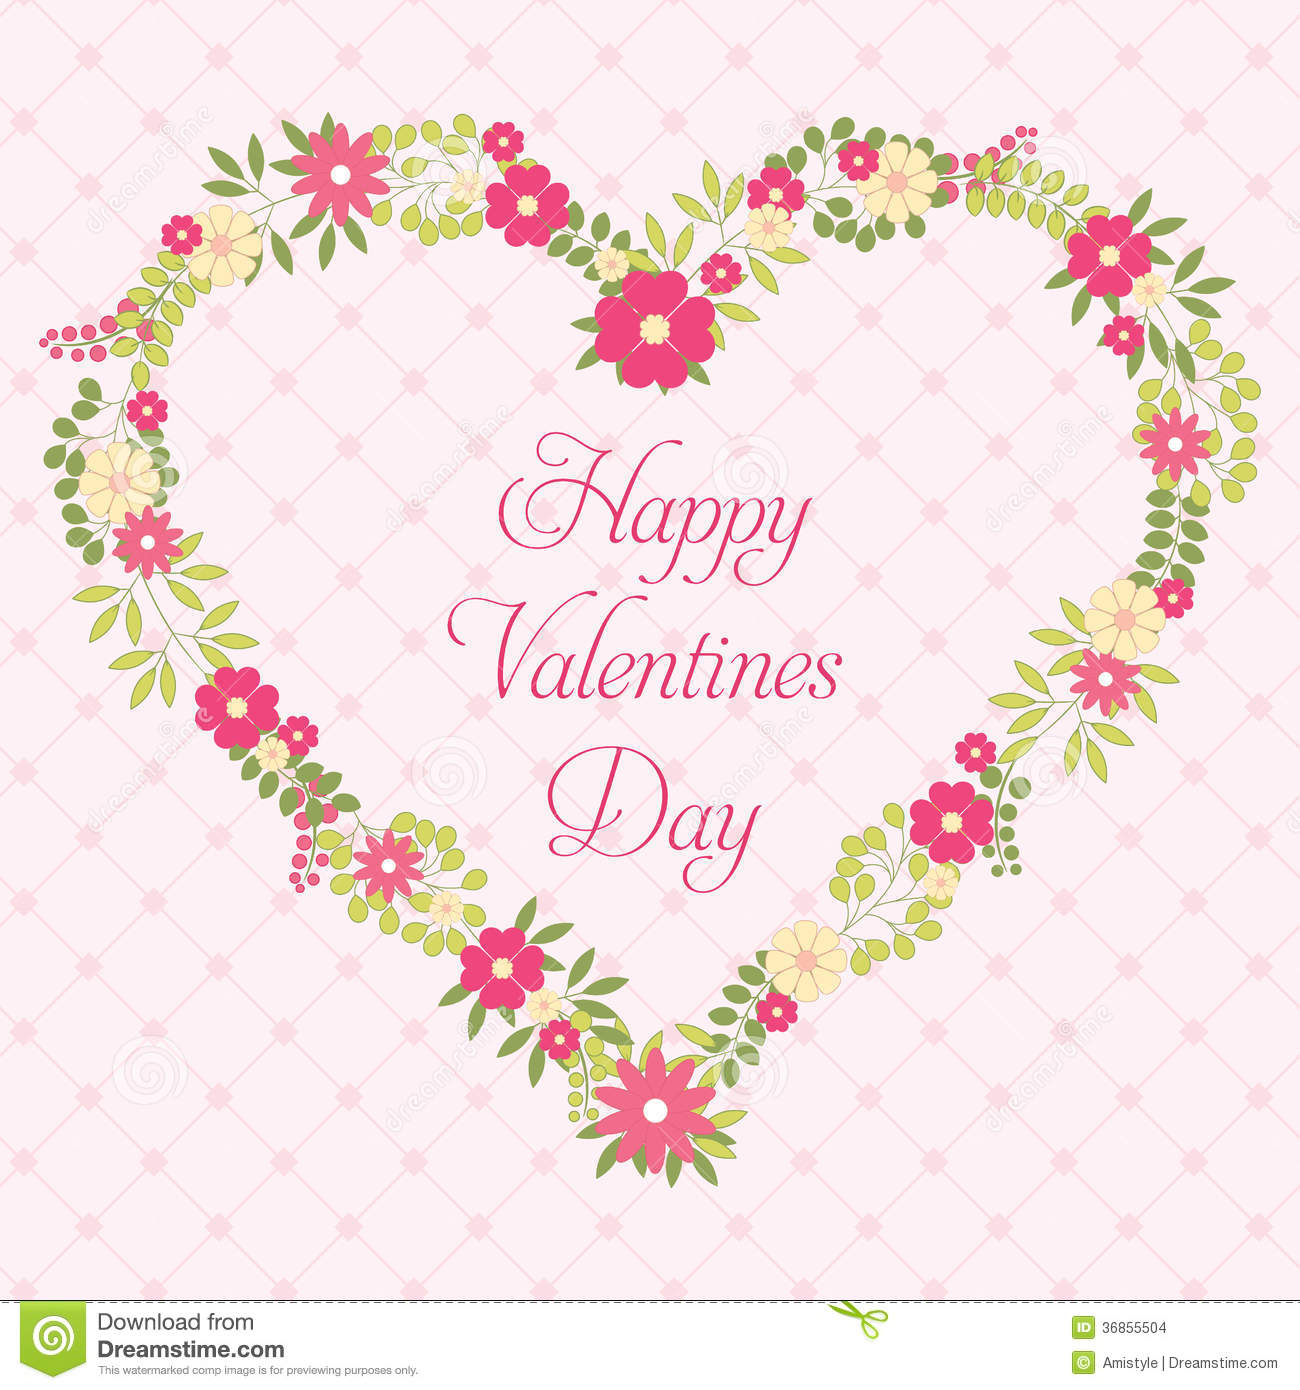 Happy Valentines Day Greeting Card With Flowers In Vintage Style